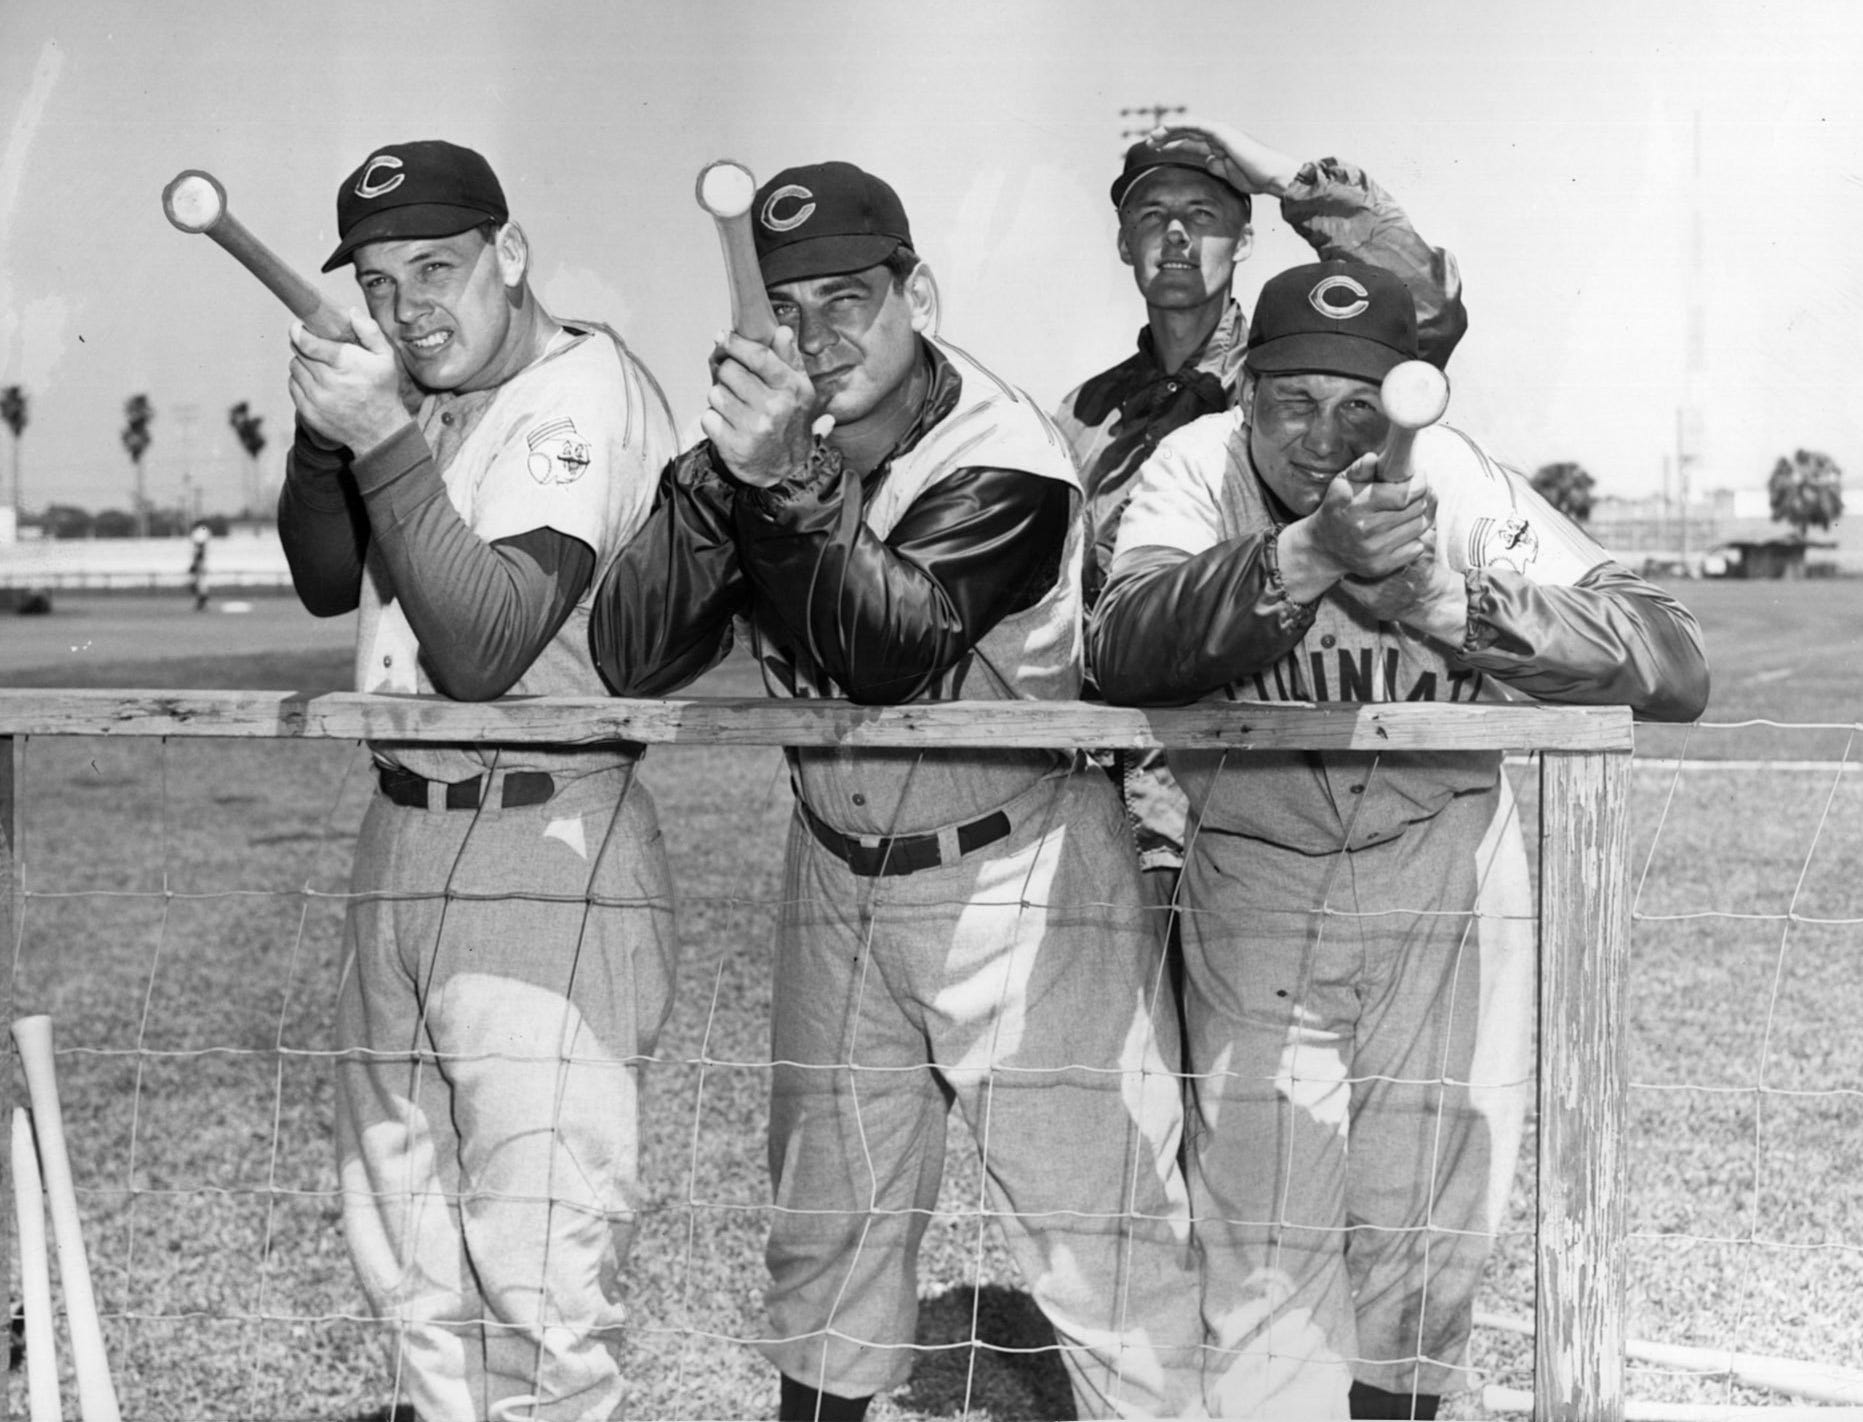 AP file photo of the Cincinnati Reds, shown with their batting artillery at the club's spring training camp in 1956 at Tampa, Florida. Pictured from left to right are Gus Bell, Ted Kluszewski and Wally Post.